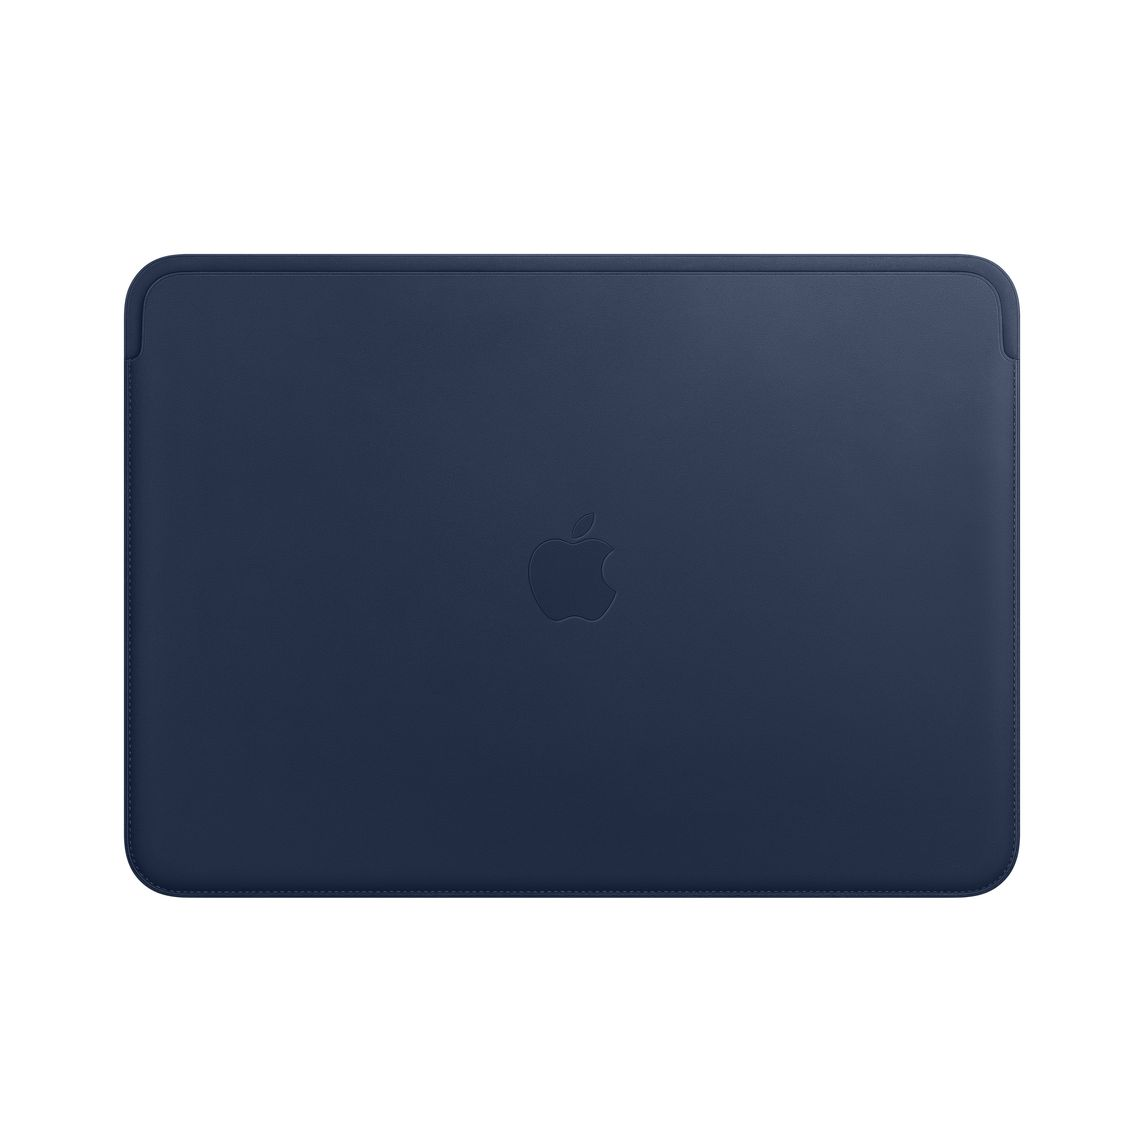 cheap for discount 96c41 61daa Leather Sleeve for 13-inch MacBook Air and MacBook Pro - Midnight Blue